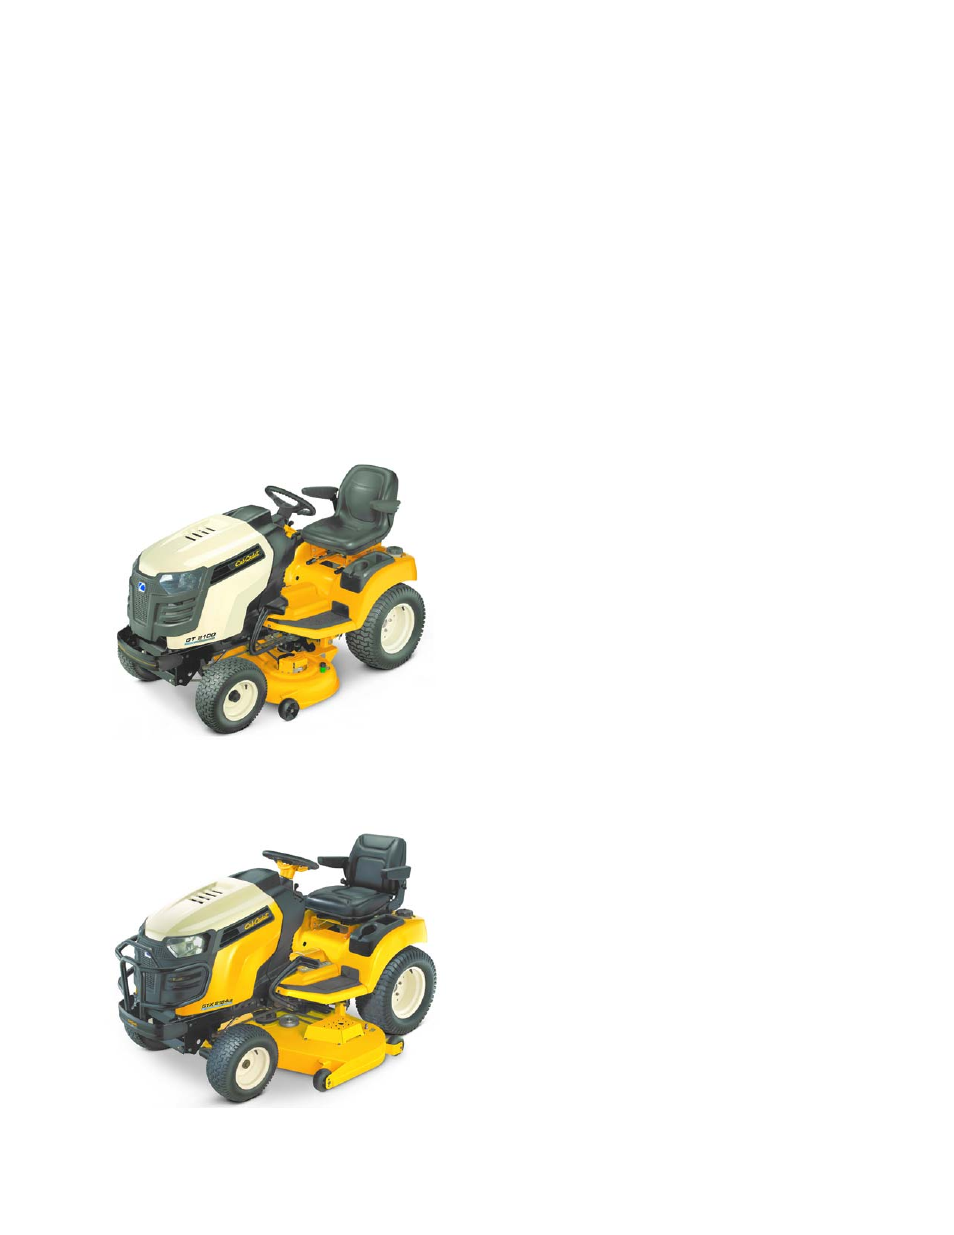 107 Cub Cadet Electric Lift Wiring Diagram. . Wiring Diagram Harness Ford Wiring Diagrams Rhunderbird on